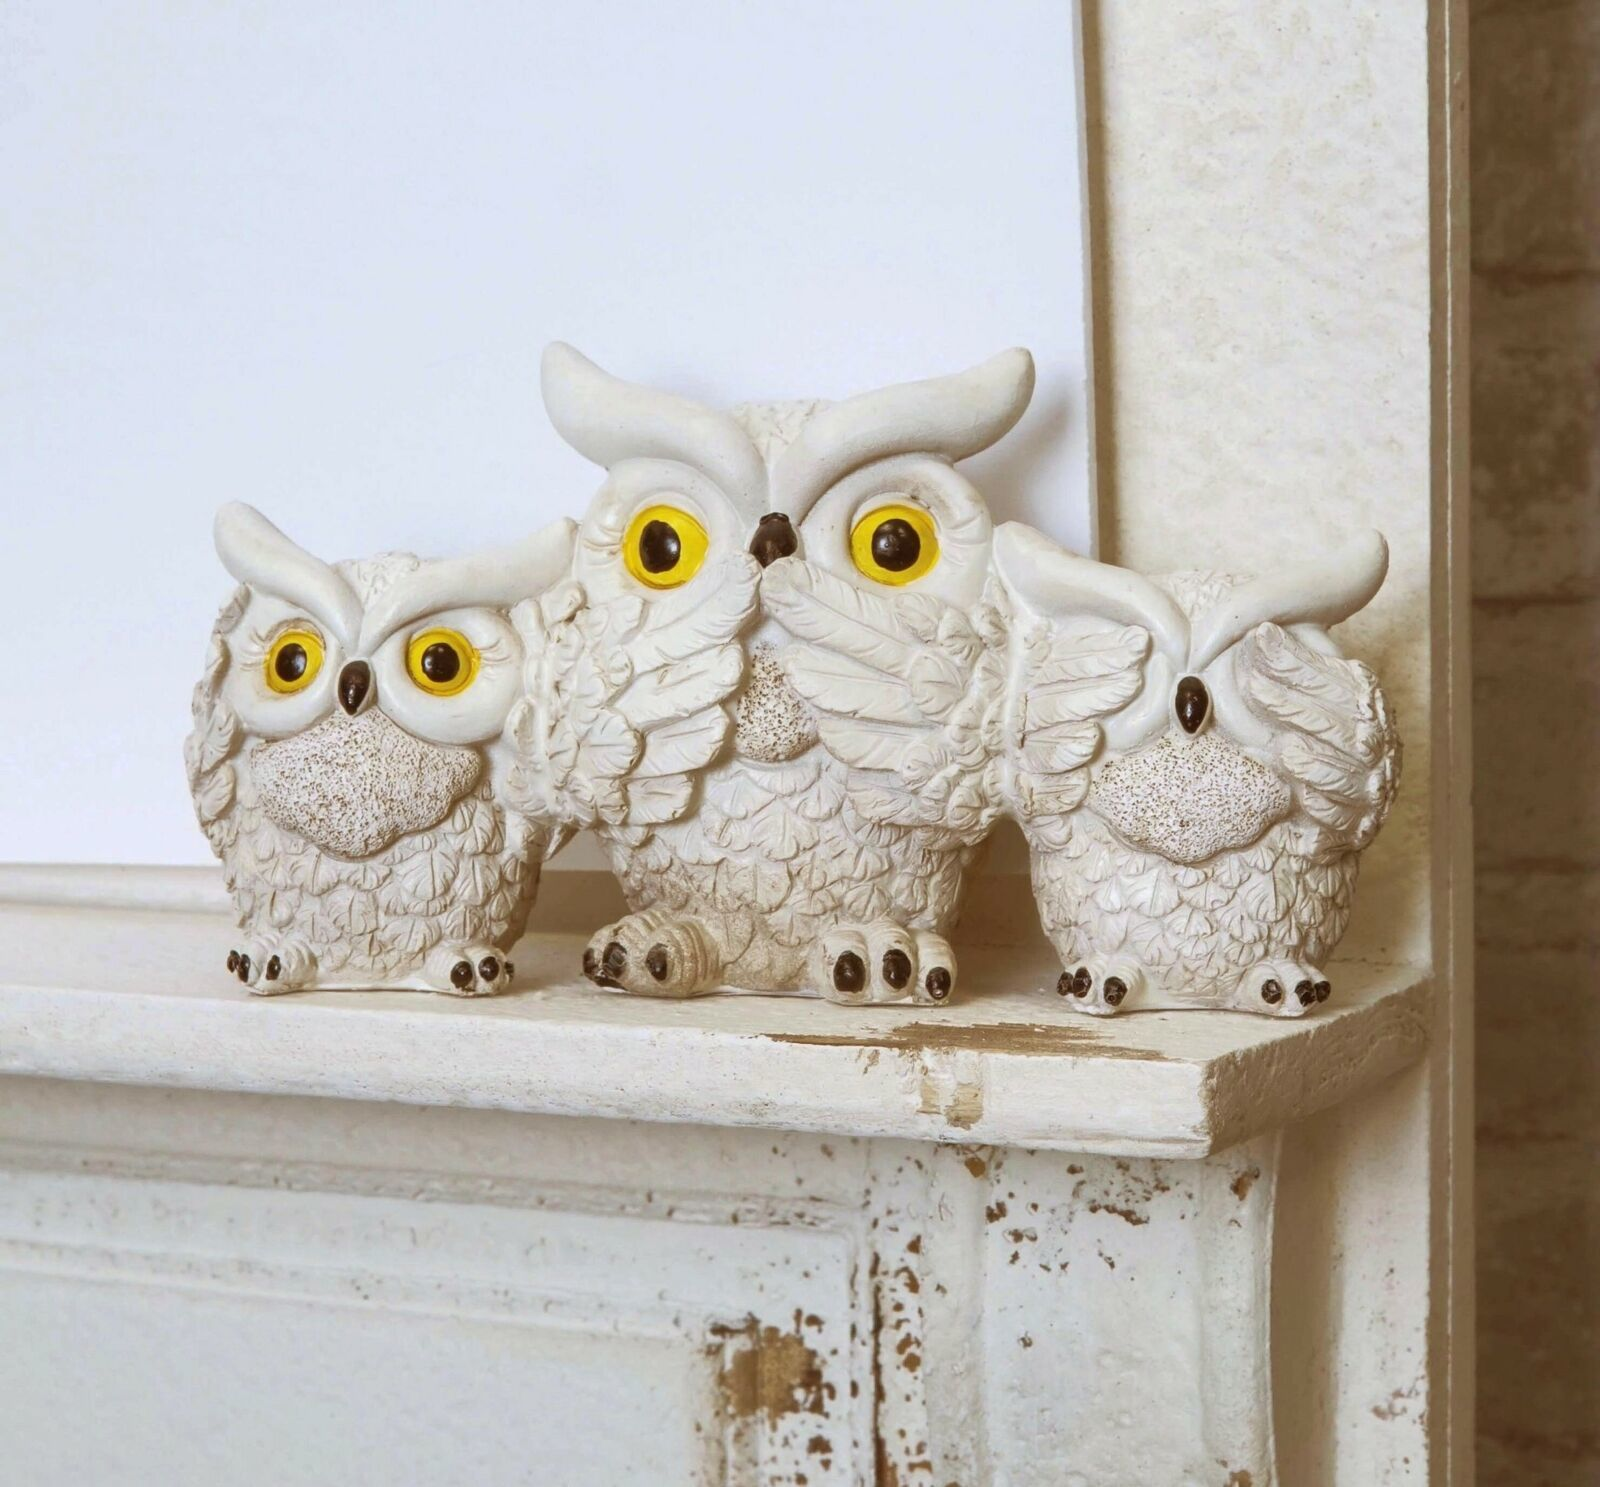 Primary image for Cream Colored See Hear Speak No Evil Wise Fat Owls Figurine Owl Family Decor